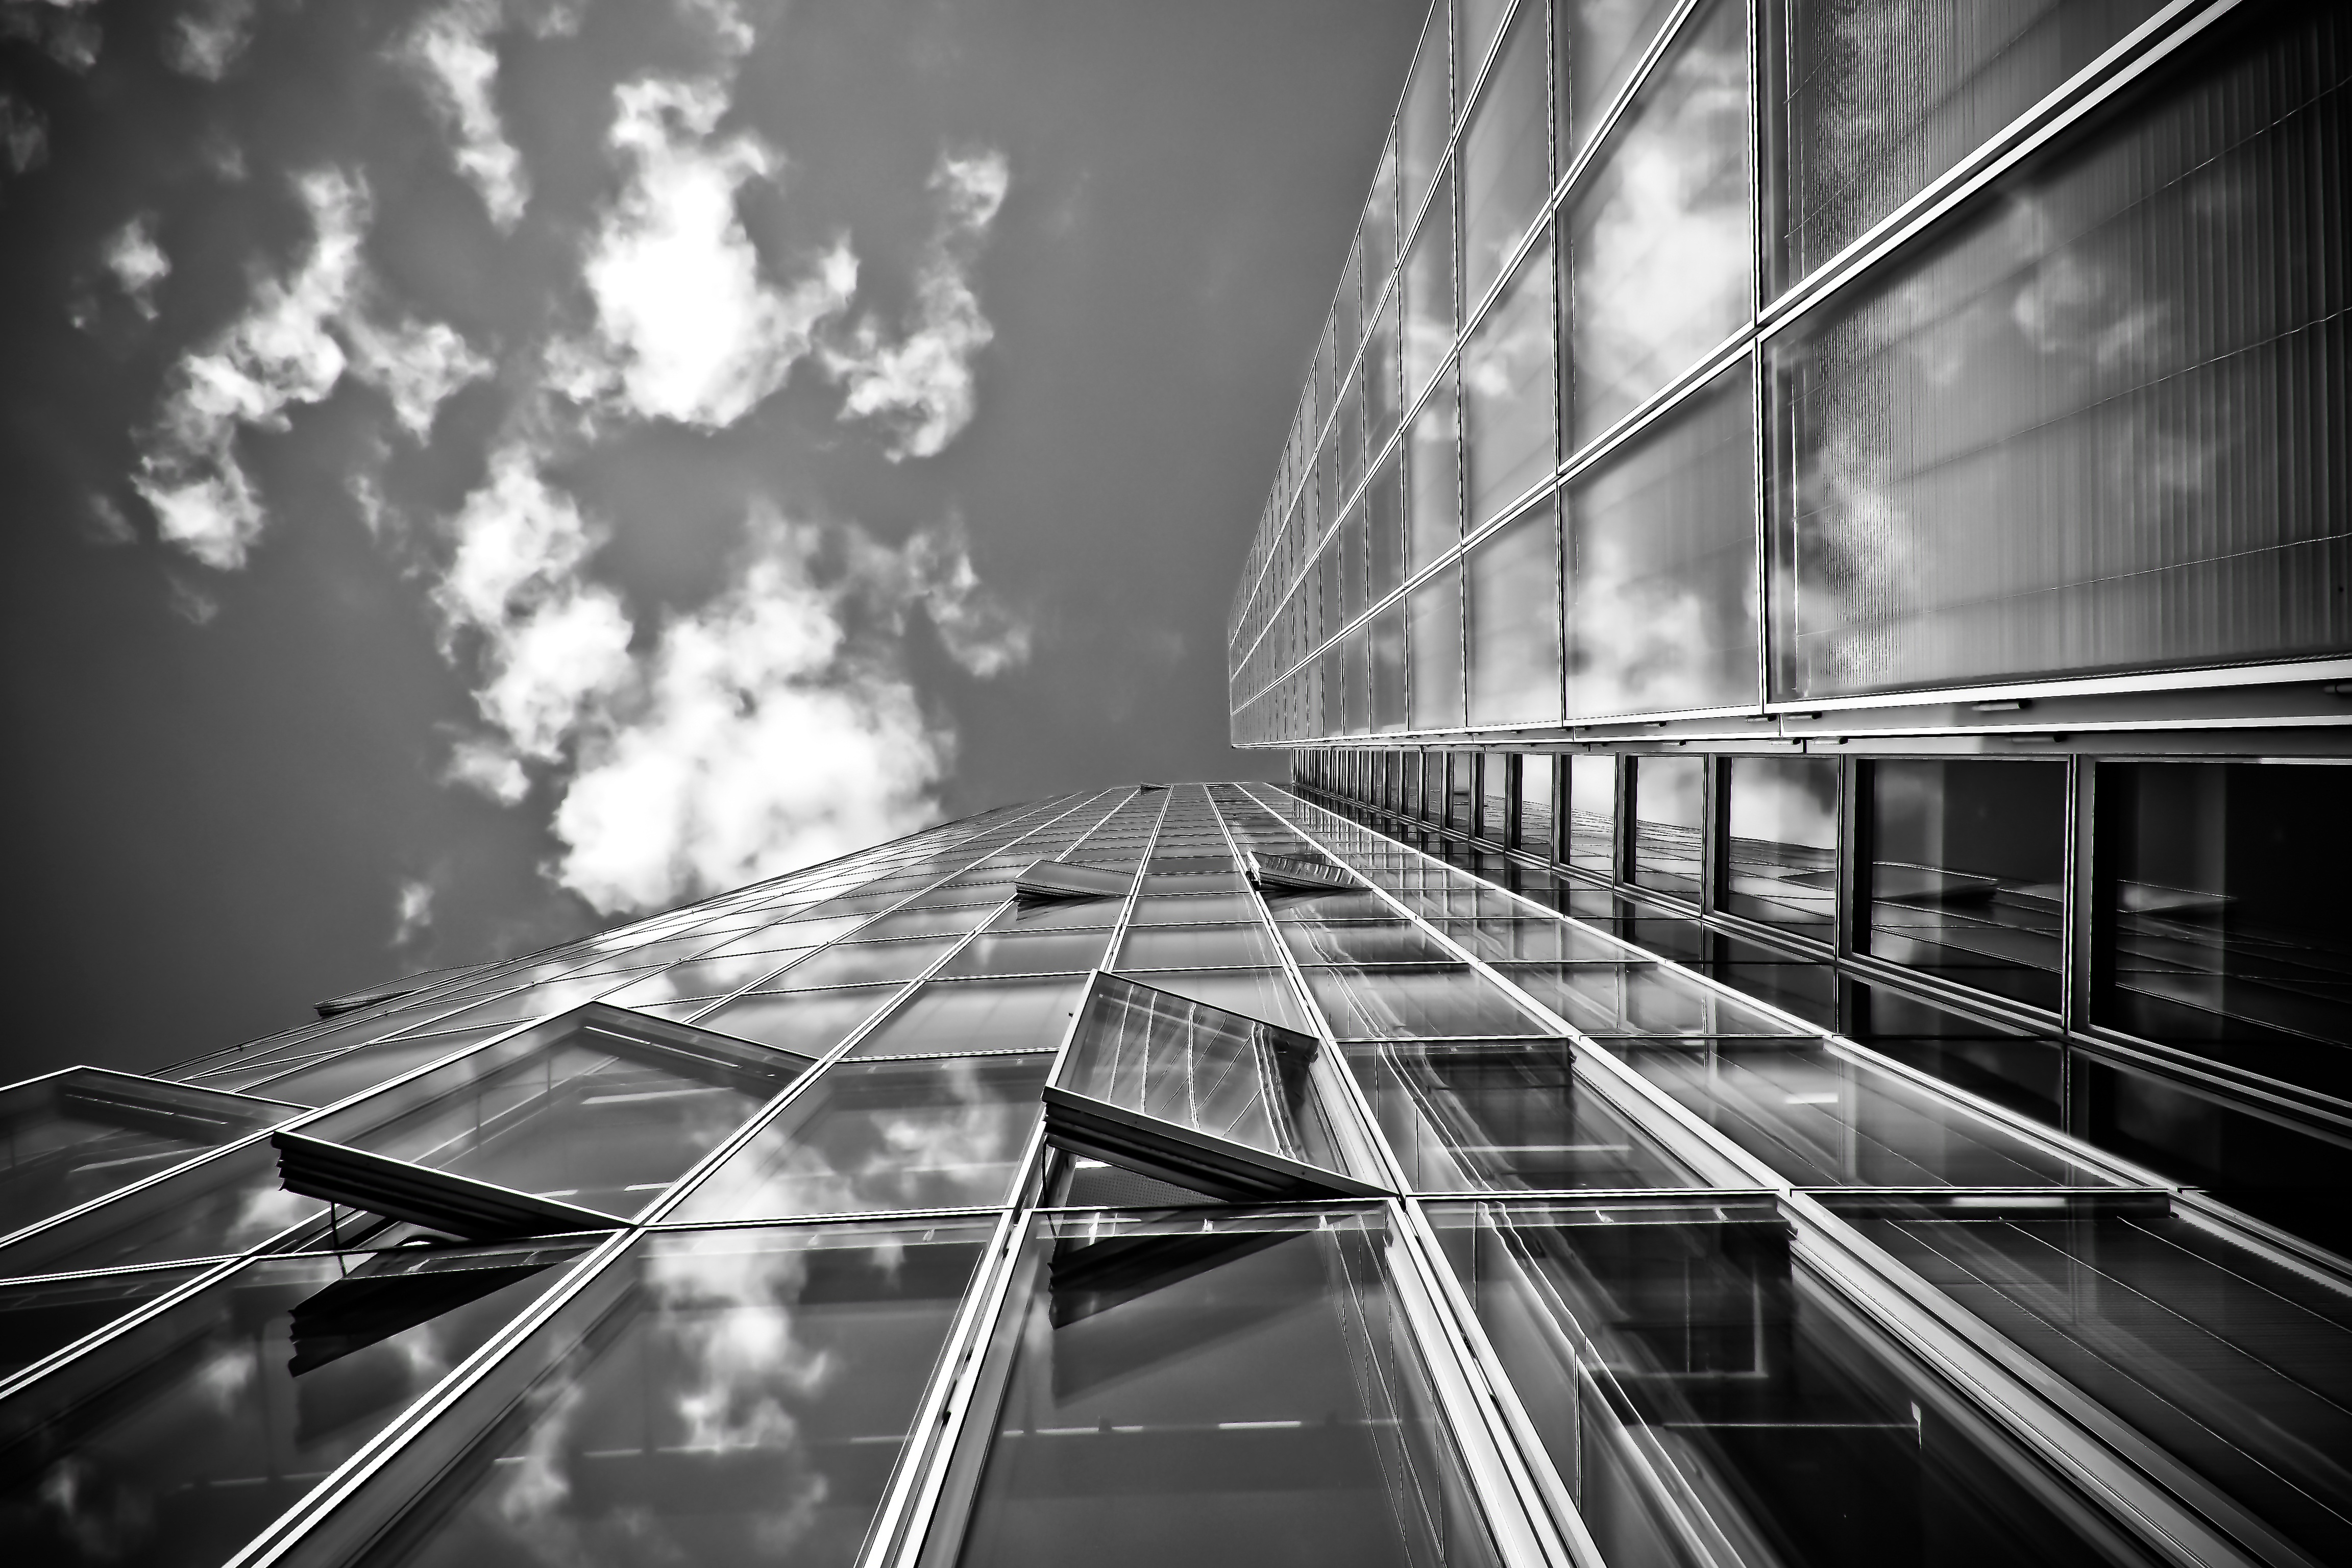 Black Pattern Wallpaper Grayscale Of Building Durngdaytime 183 Free Stock Photo